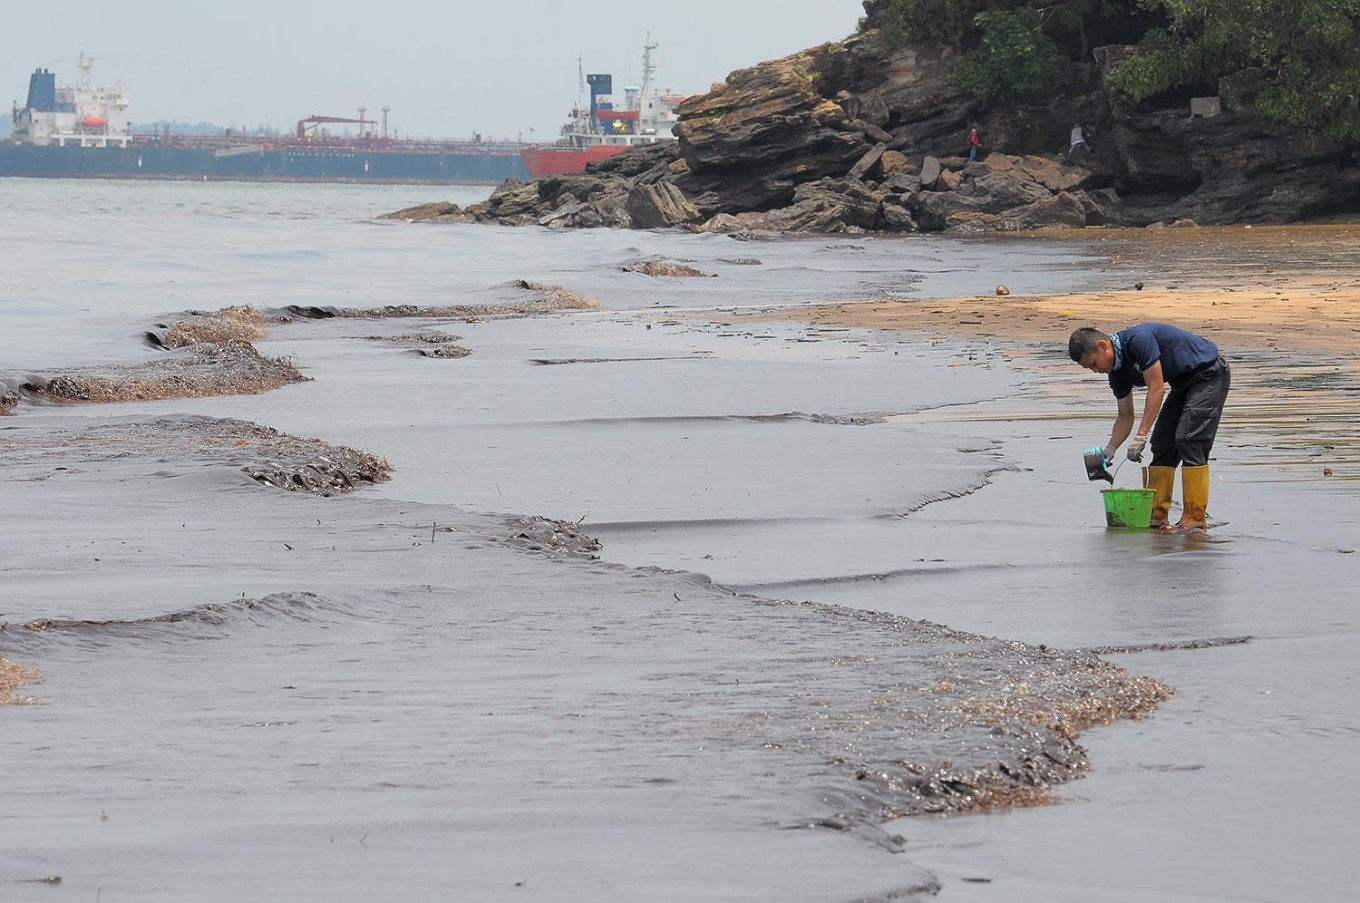 Pertamina makes headway in cleaning Balikpapan spill